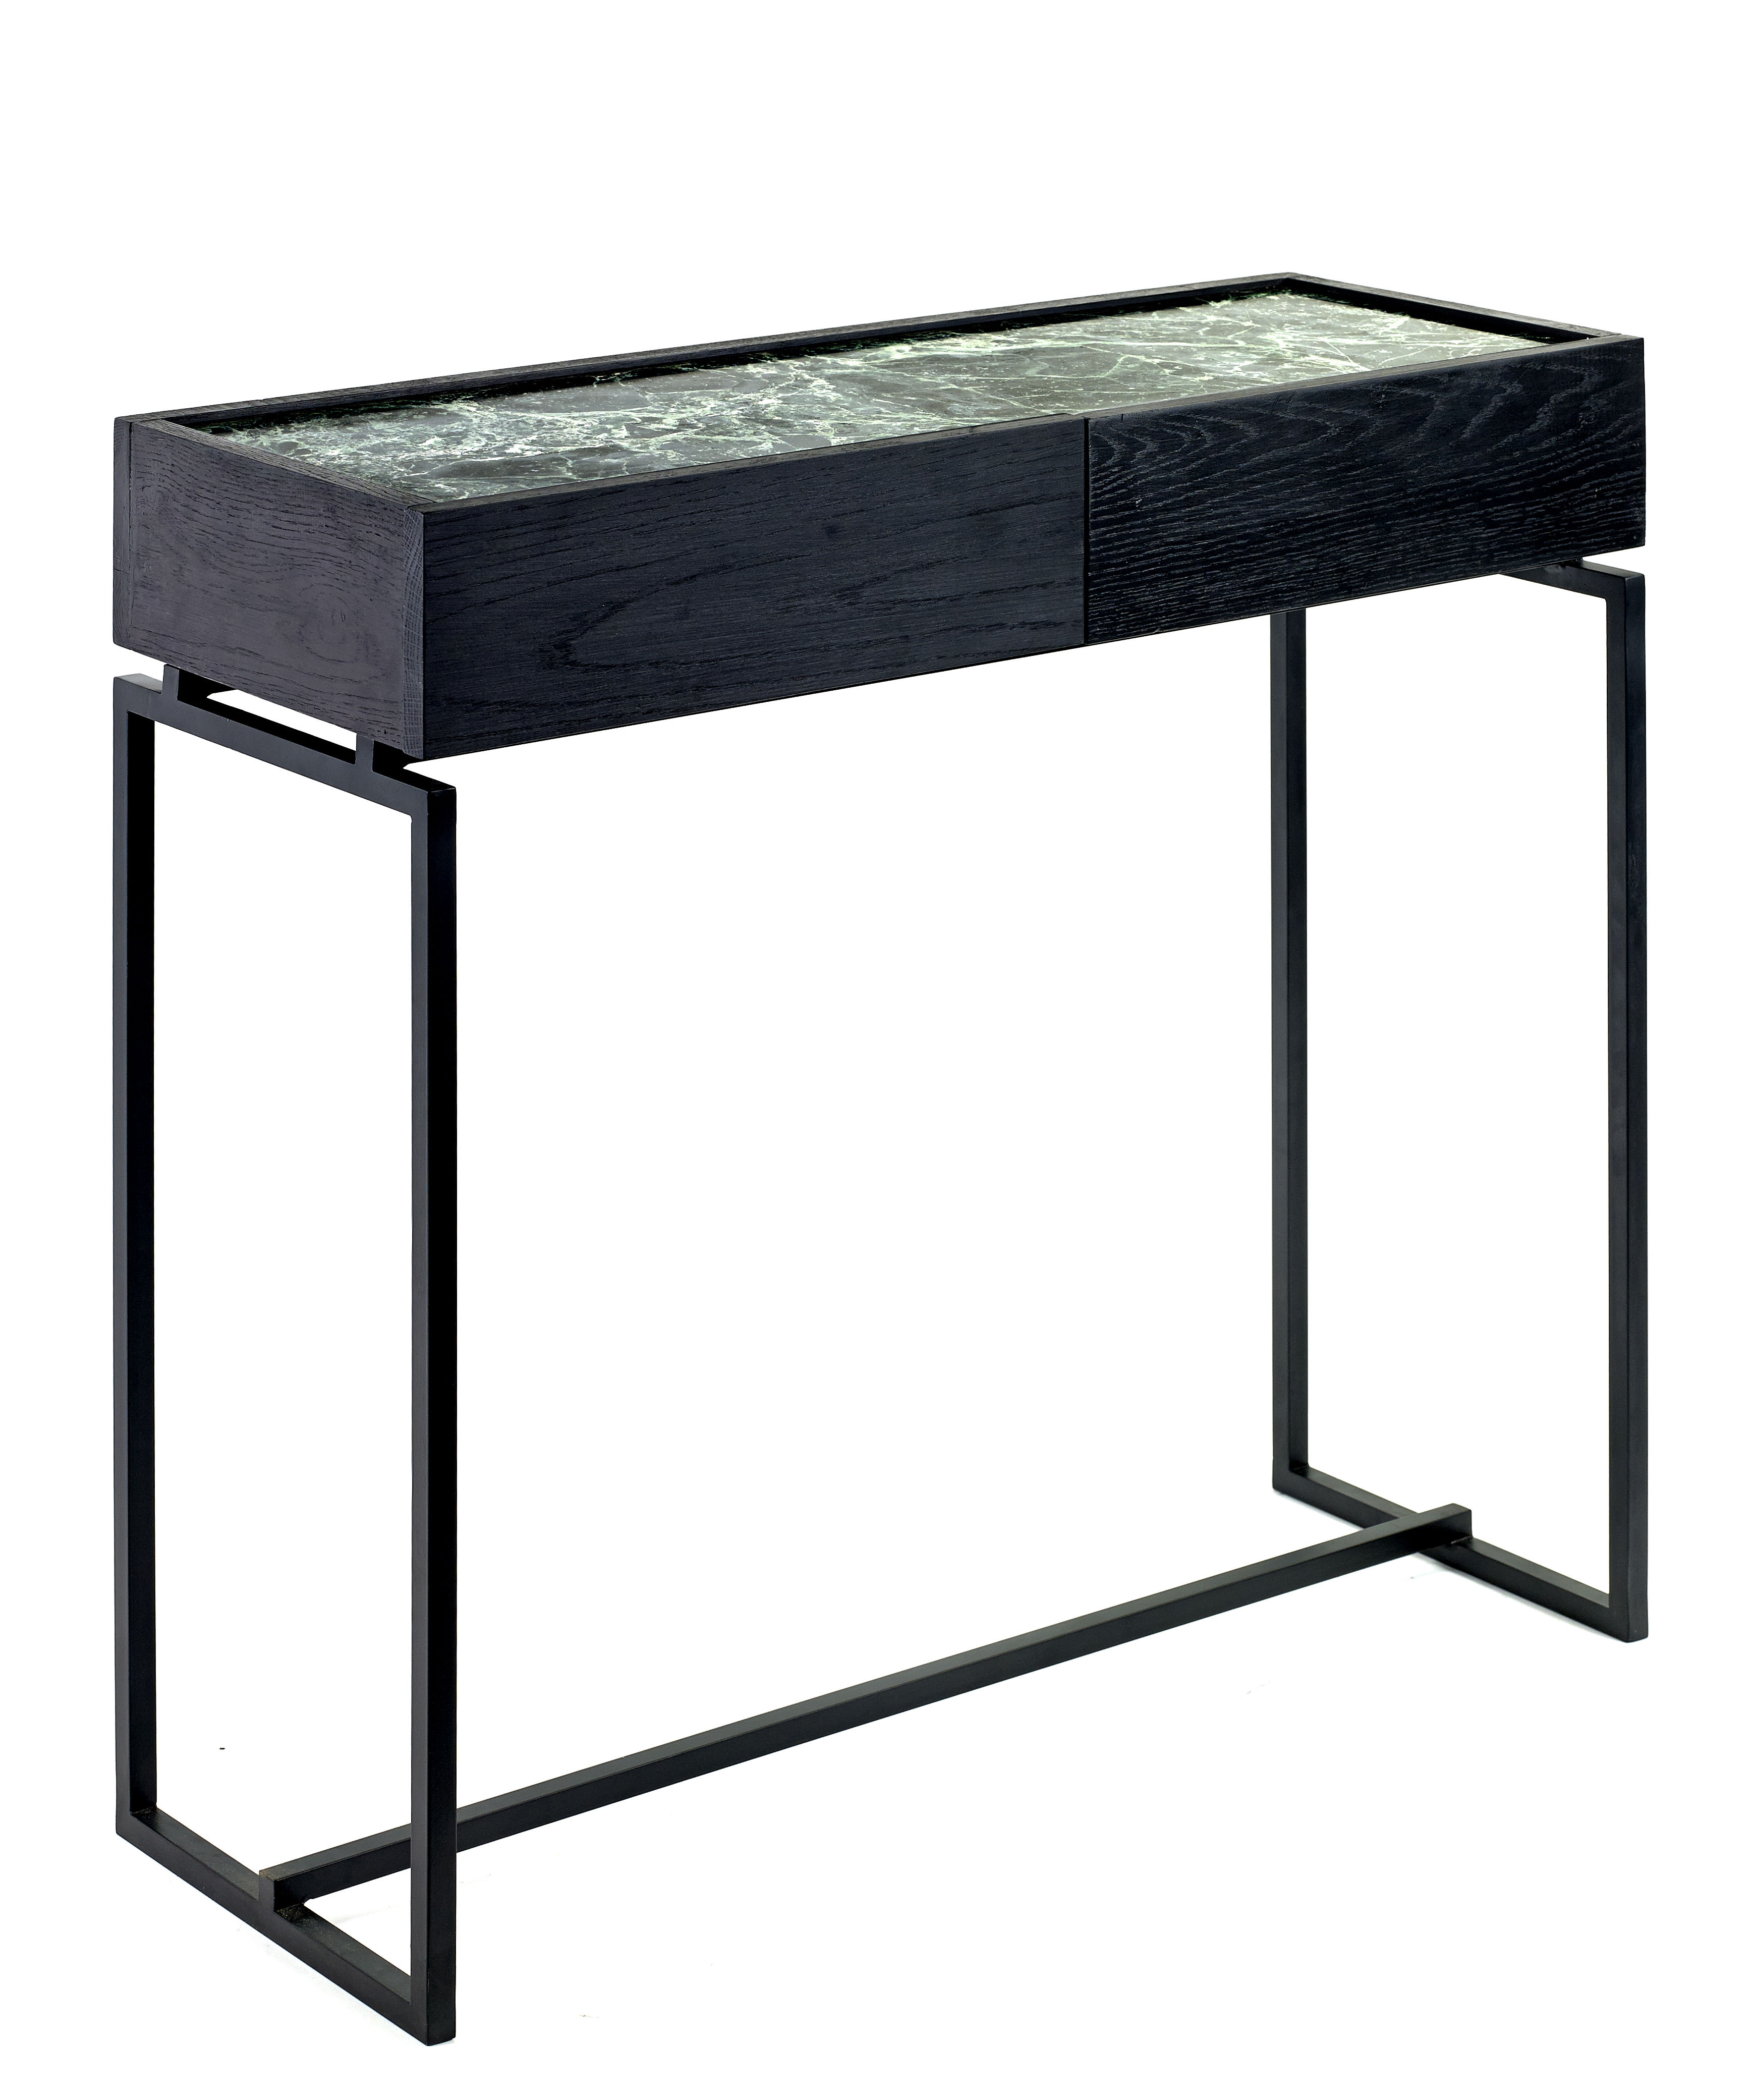 console verde 2 tiroirs marbre l 80 cm marbre vert pied noir serax. Black Bedroom Furniture Sets. Home Design Ideas